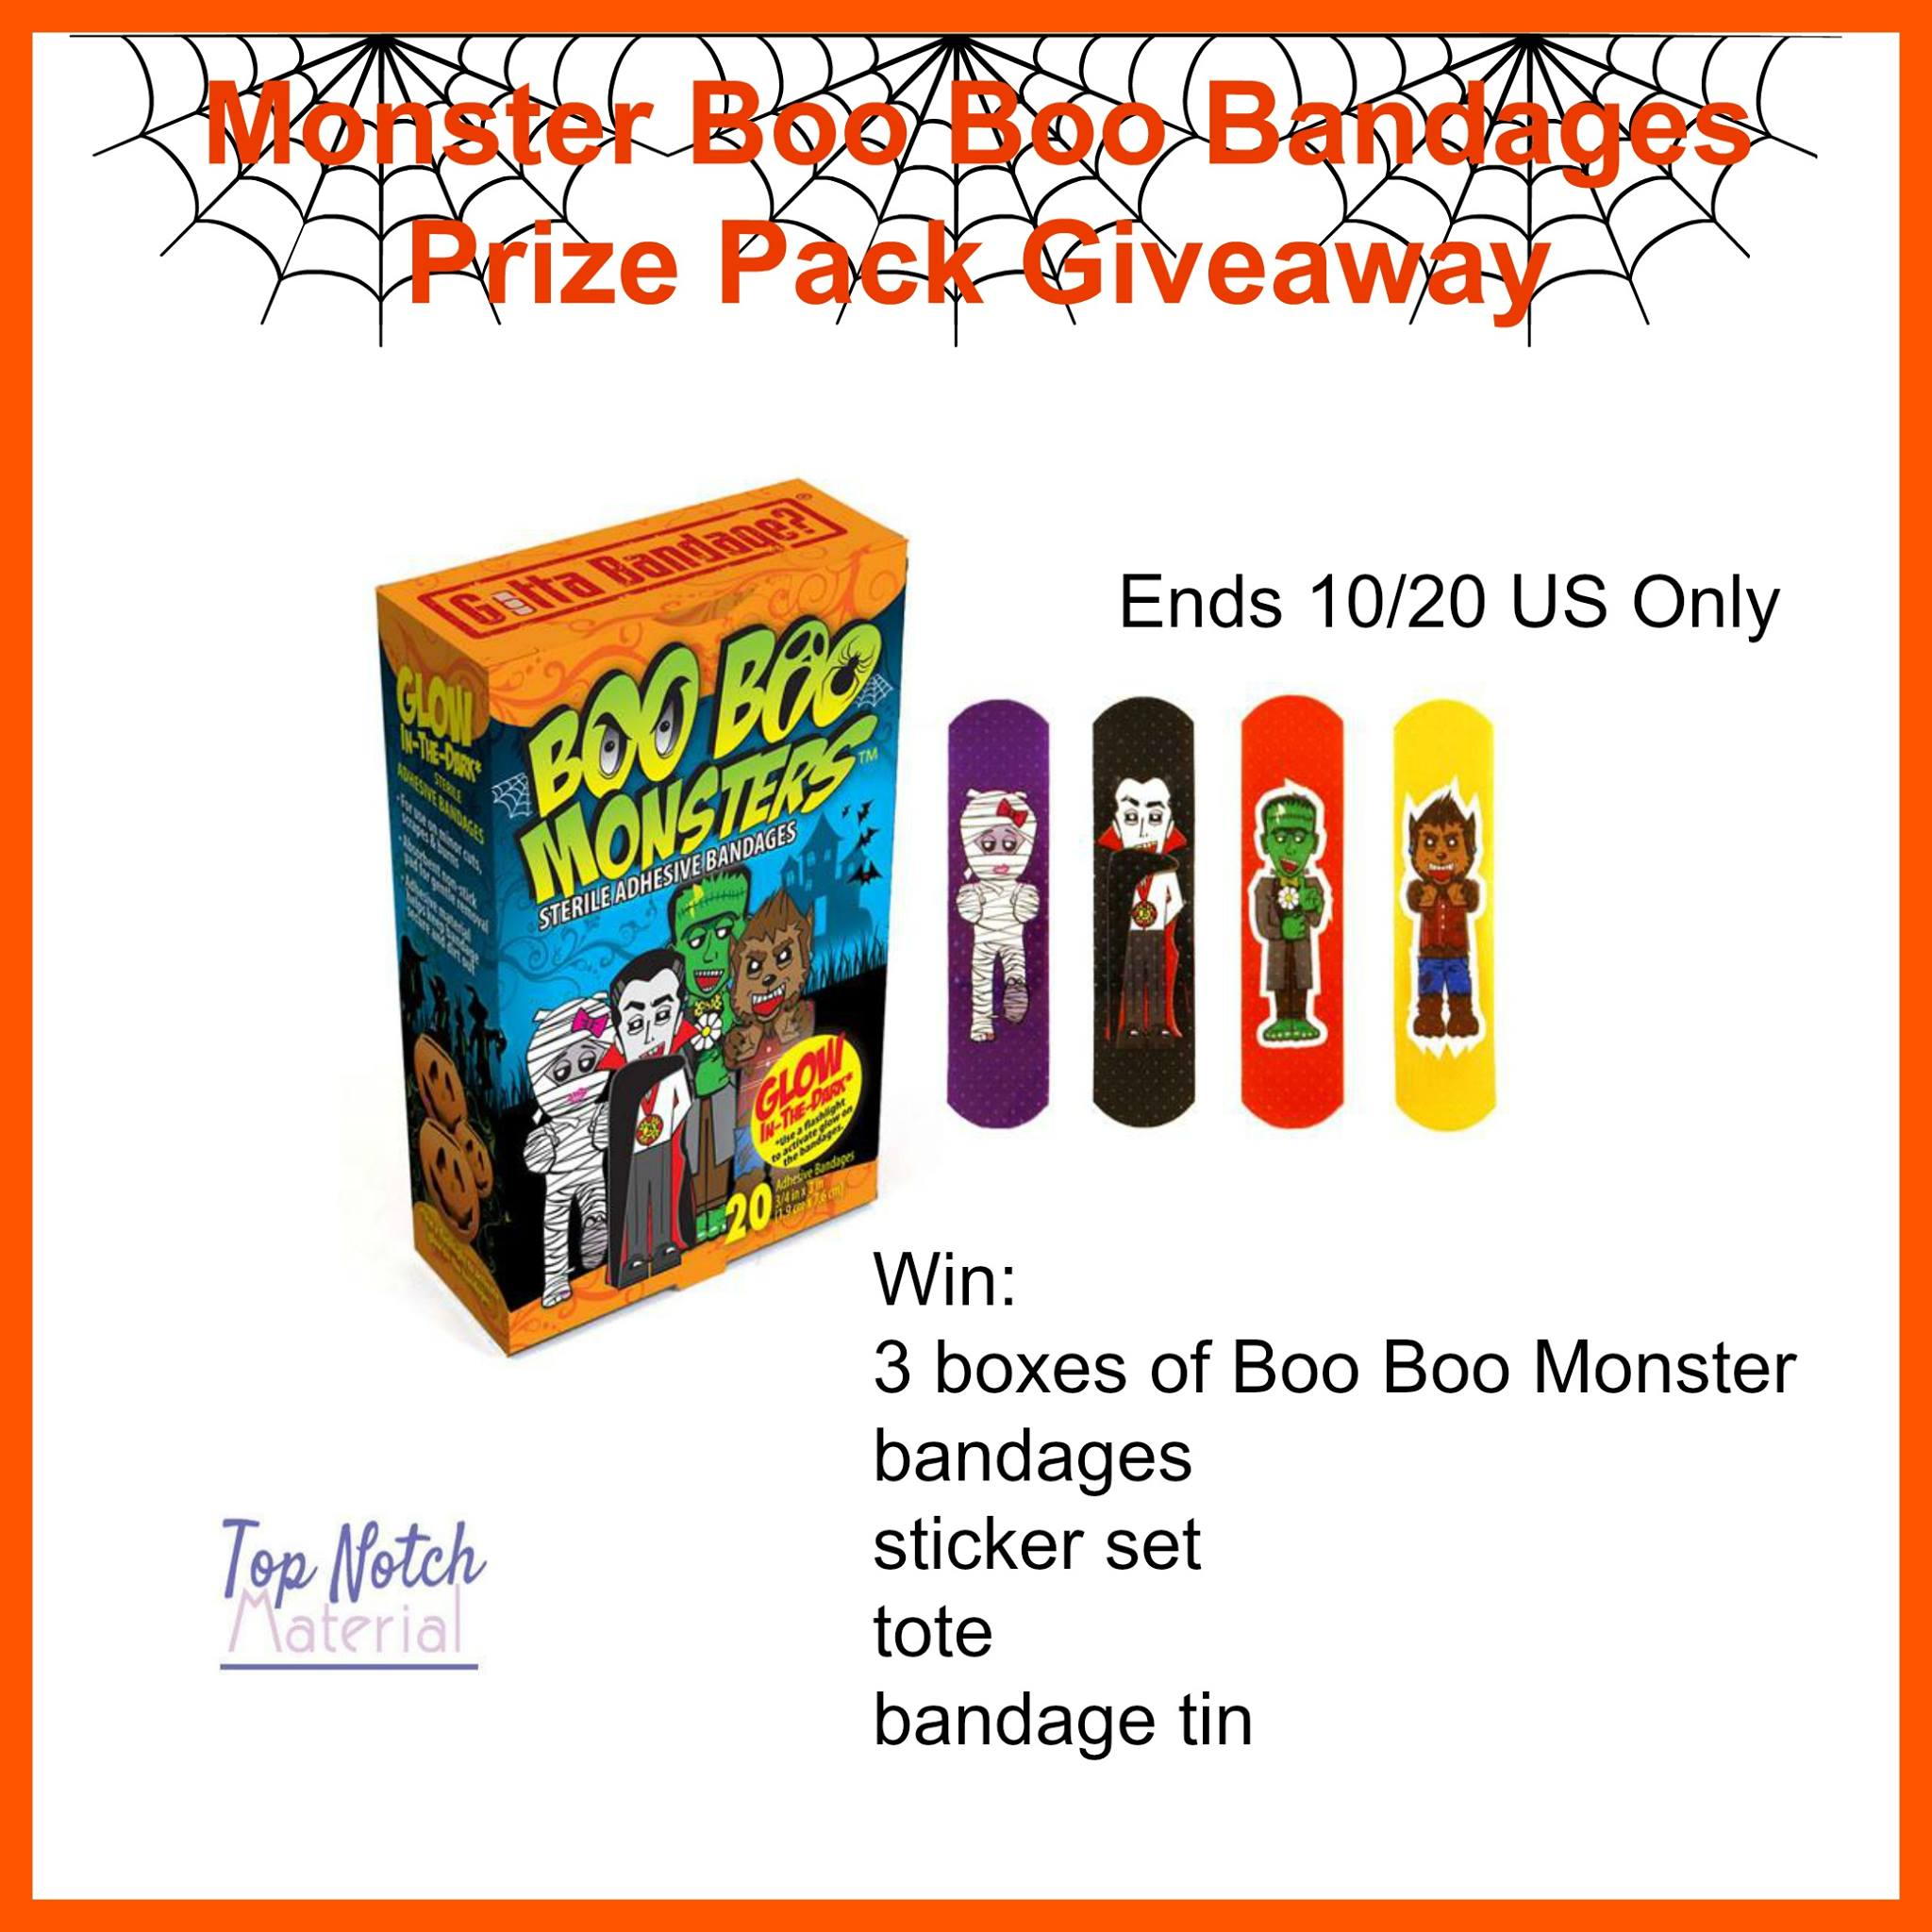 Boo Boo Monster Bandage Prize Pack Giveaway